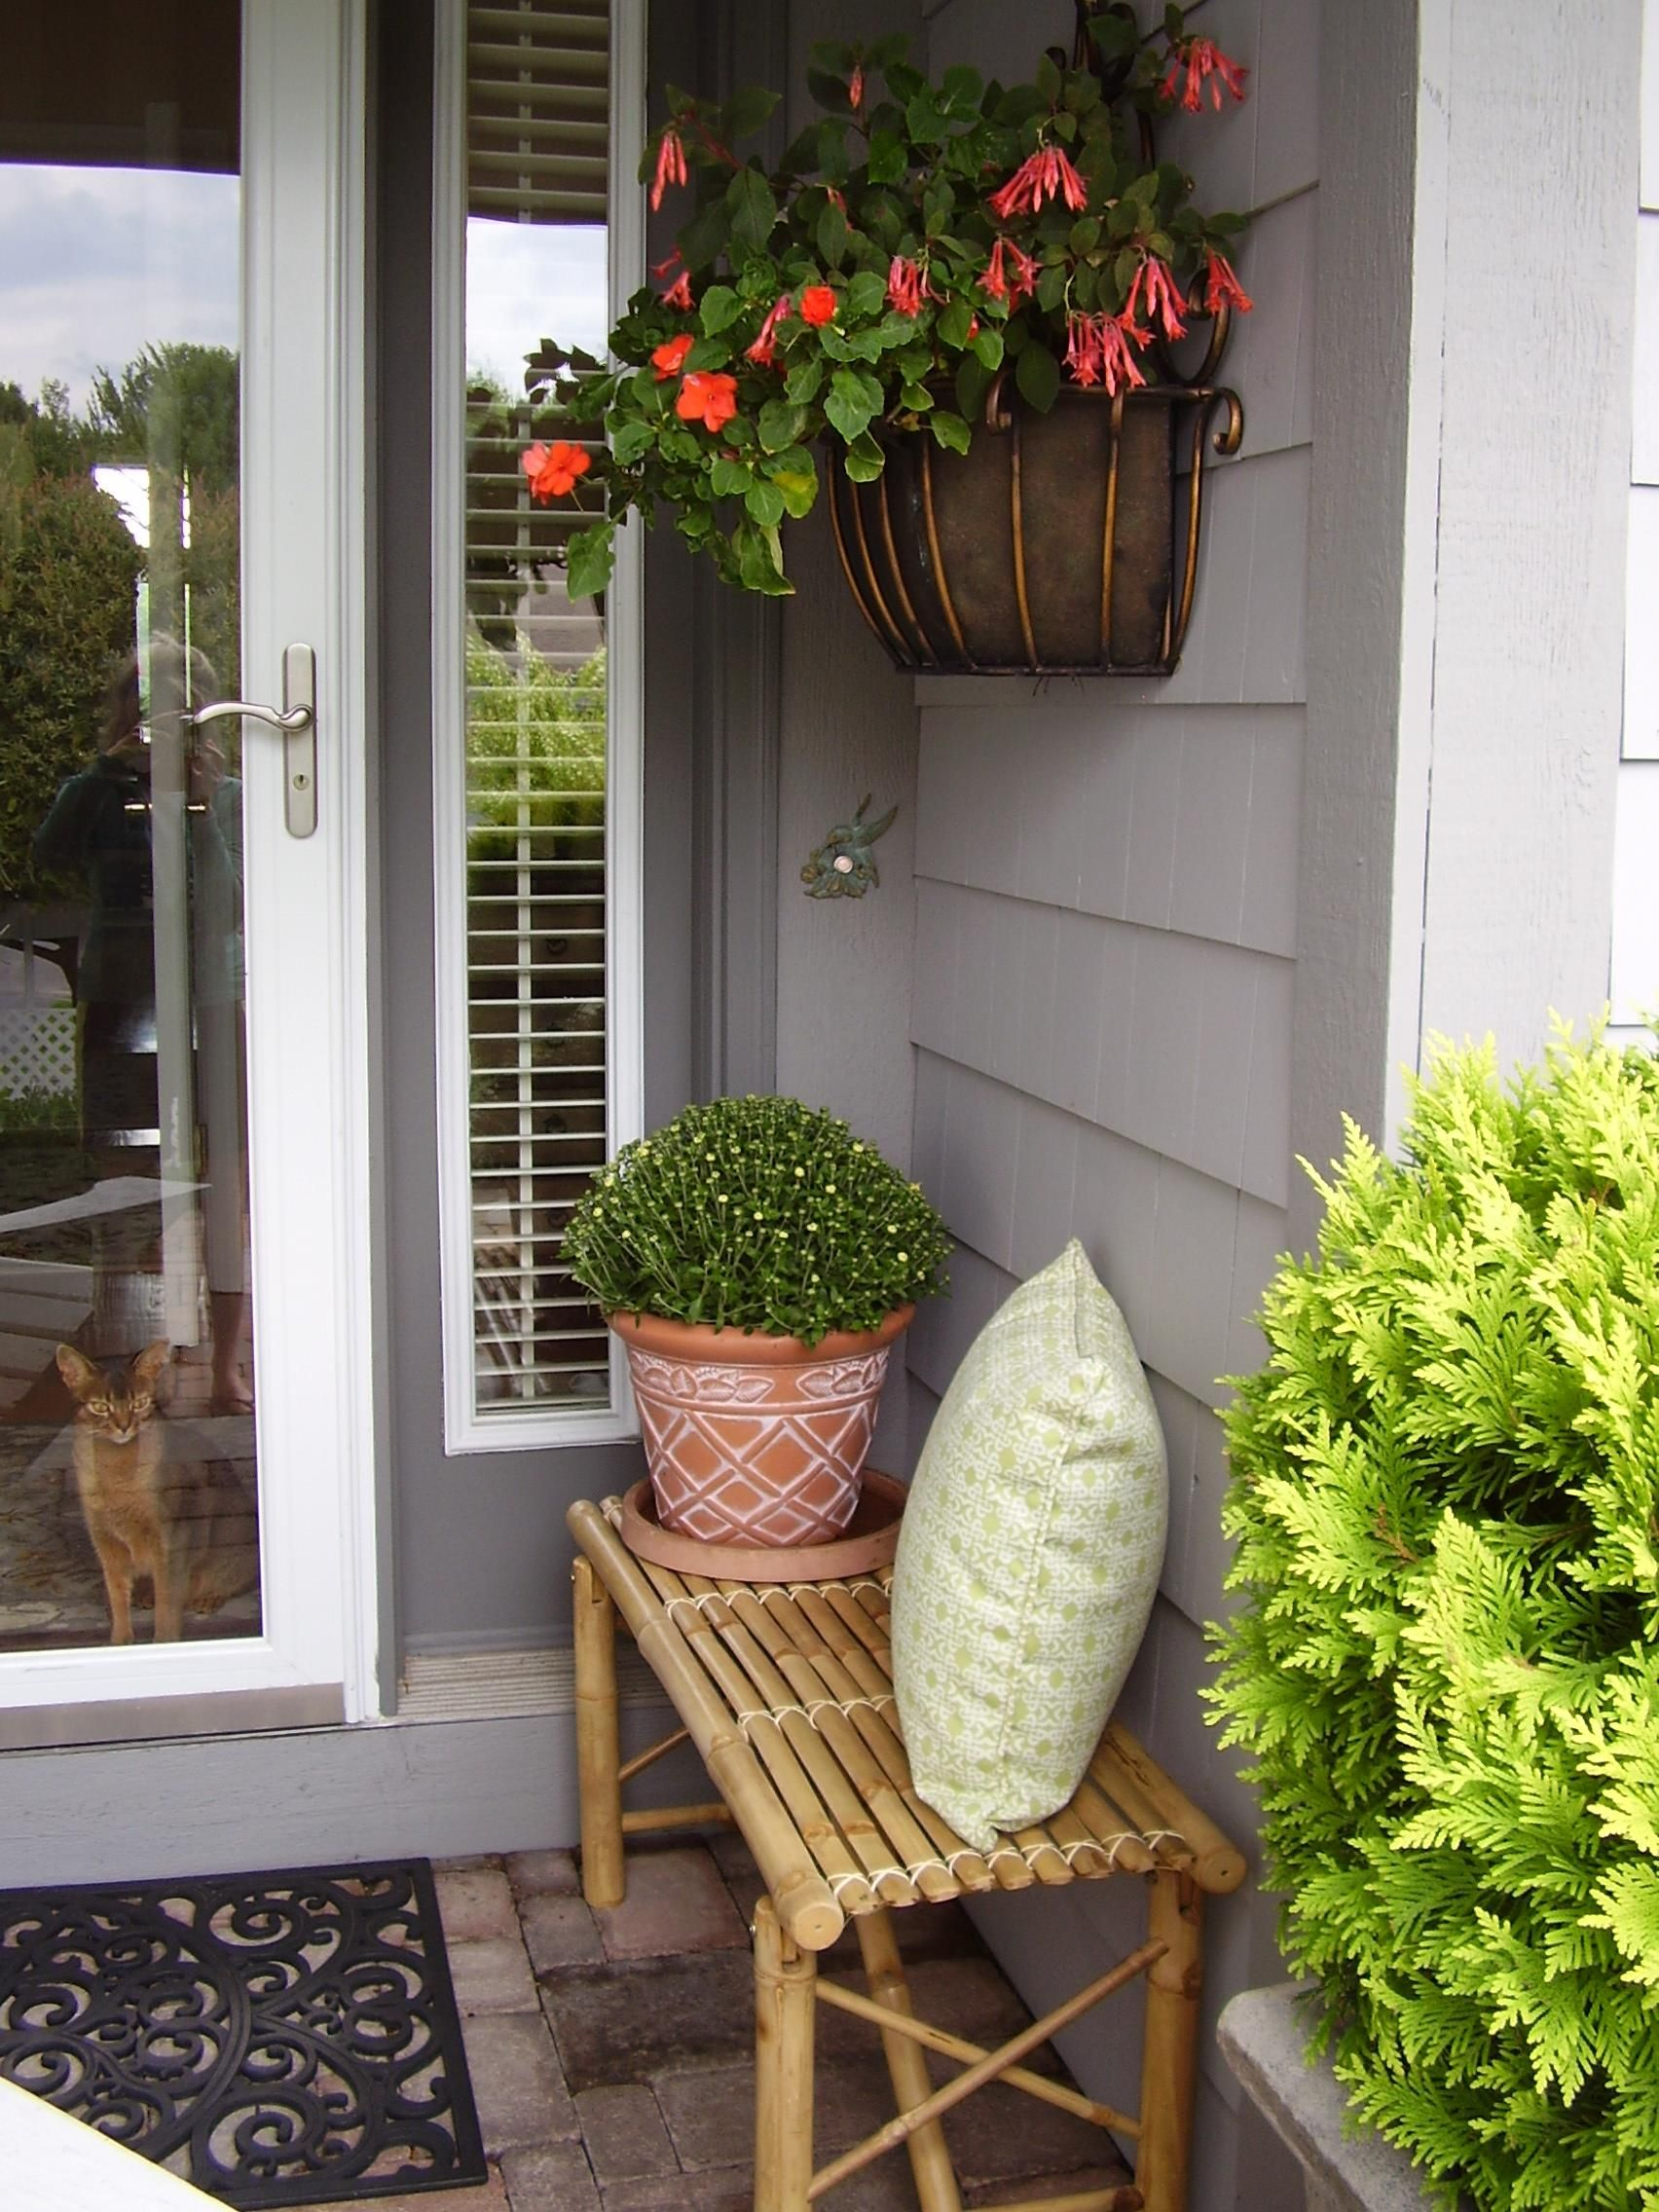 Best 25+ Small Porch Decorating Ideas On Pinterest | Small Patio Decorating,  Fall Porch Decorations And Front Porch Decorating For Fall Part 44